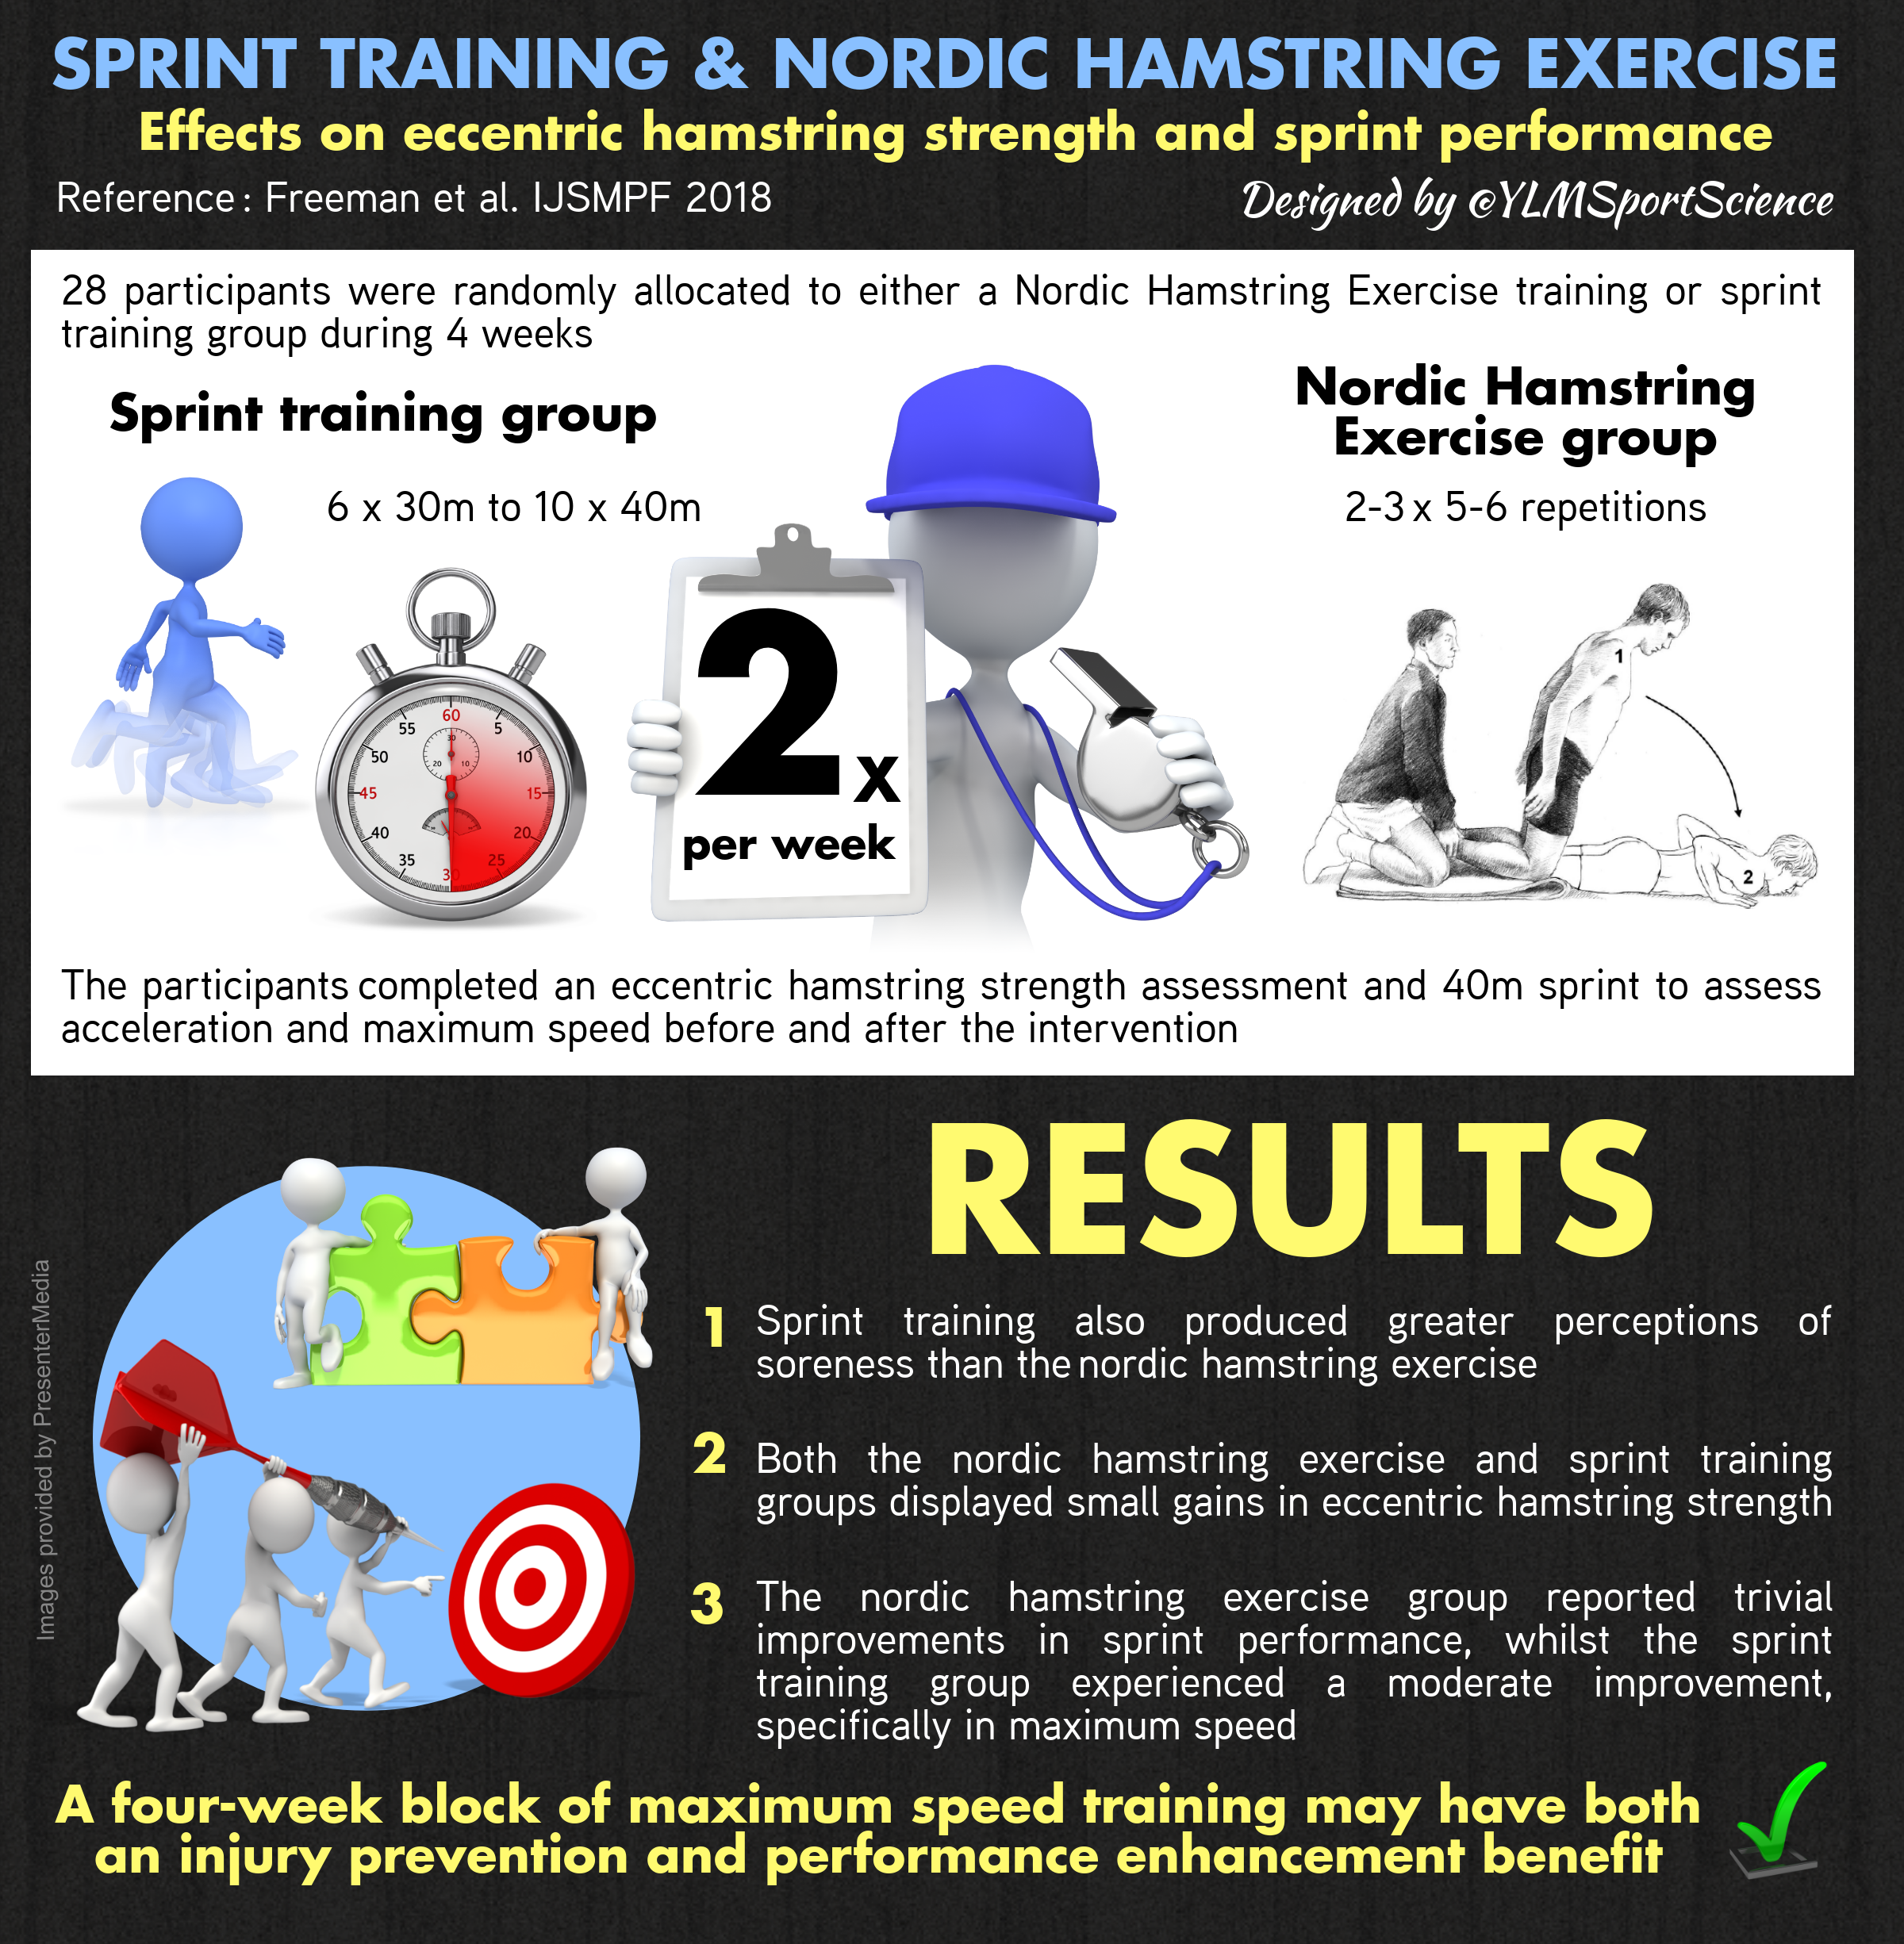 Sprint training & Nordic hamstring exercise: Effects on eccentric hamstring strength and sprint performance